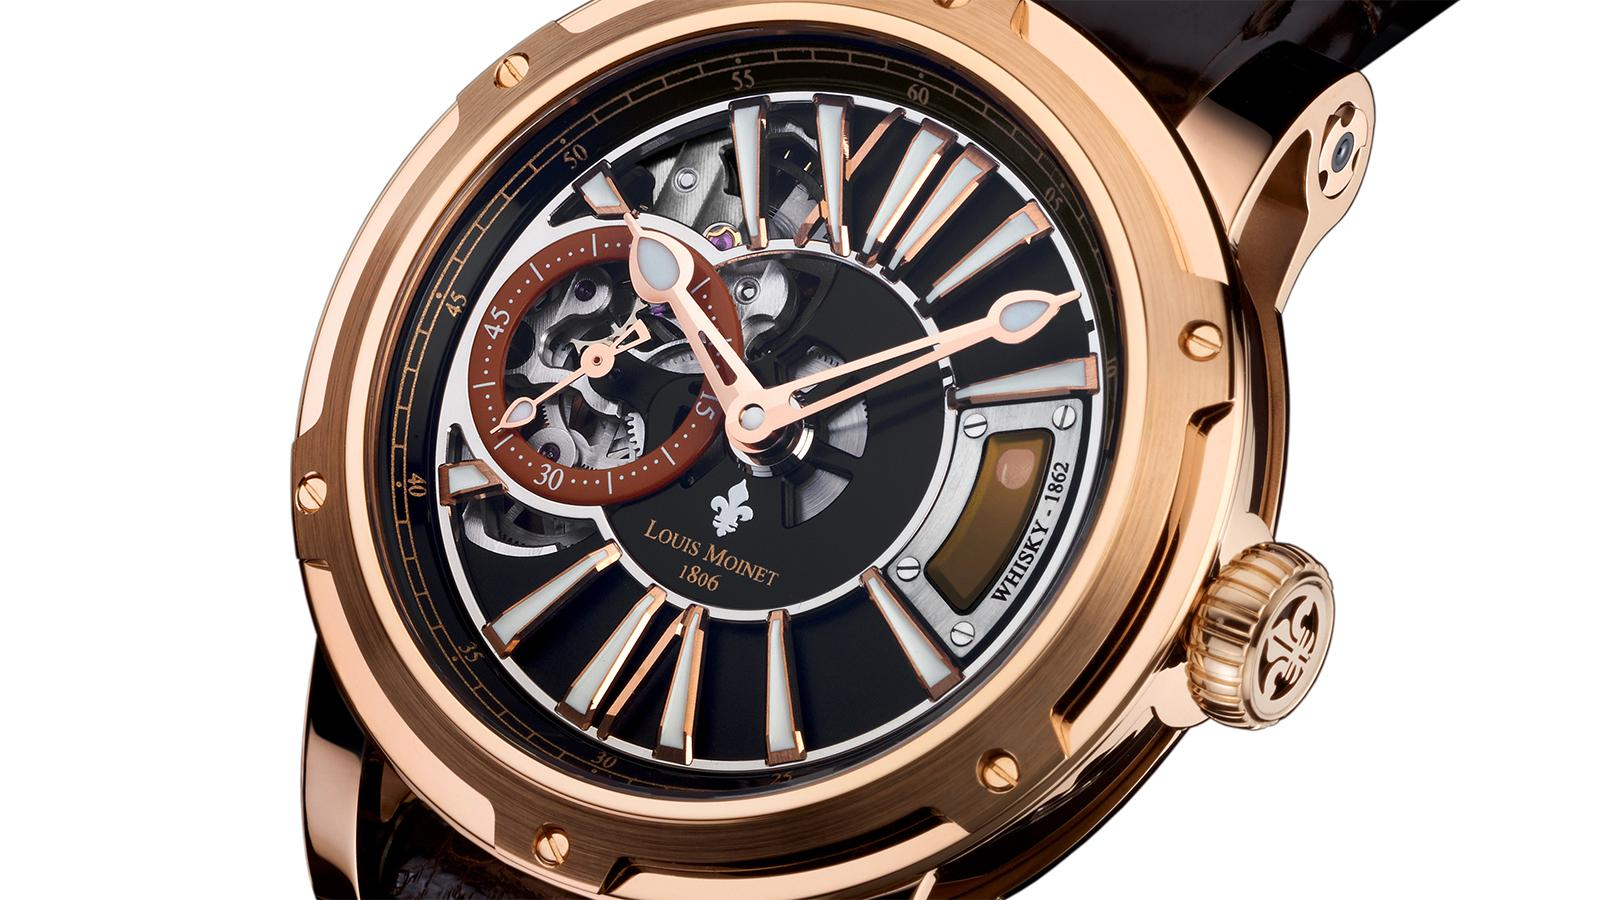 Louis Moinet's New Watch Preserves A Drop Of Old Whisky For Posterity